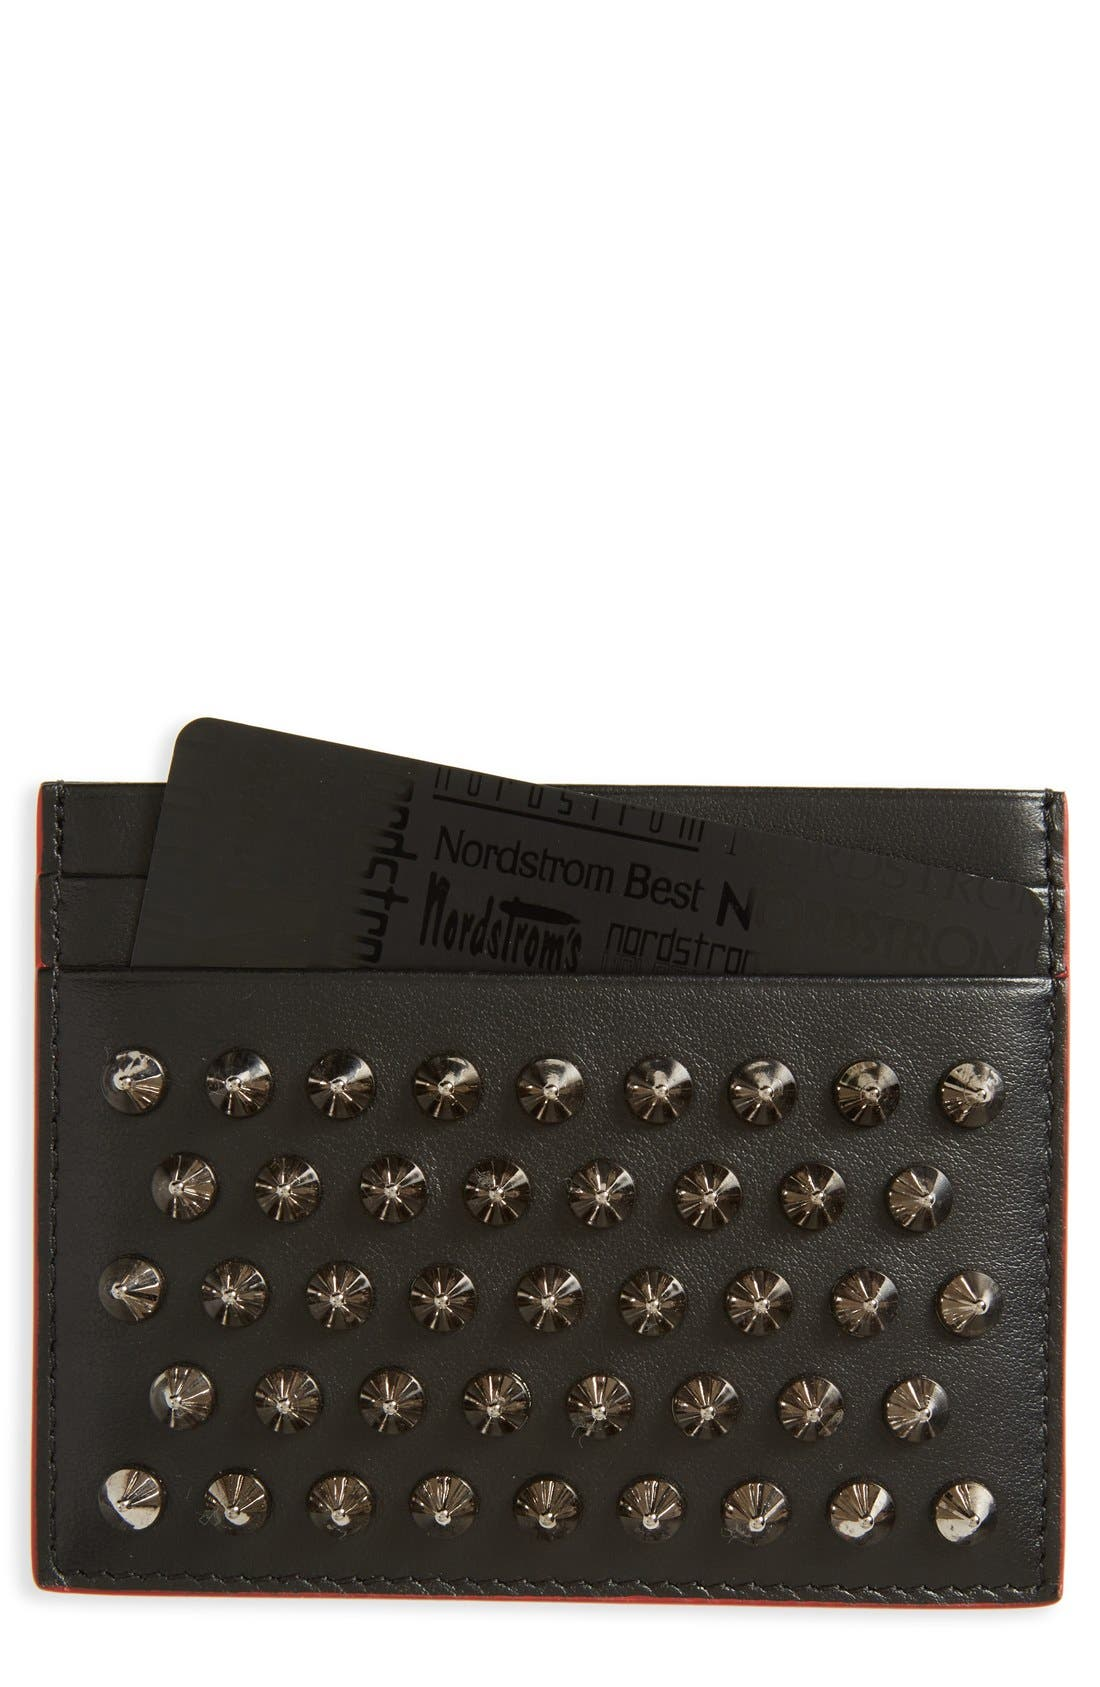 Christian Louboutin 'Kios' Spiked Calfskin Leather Card Case